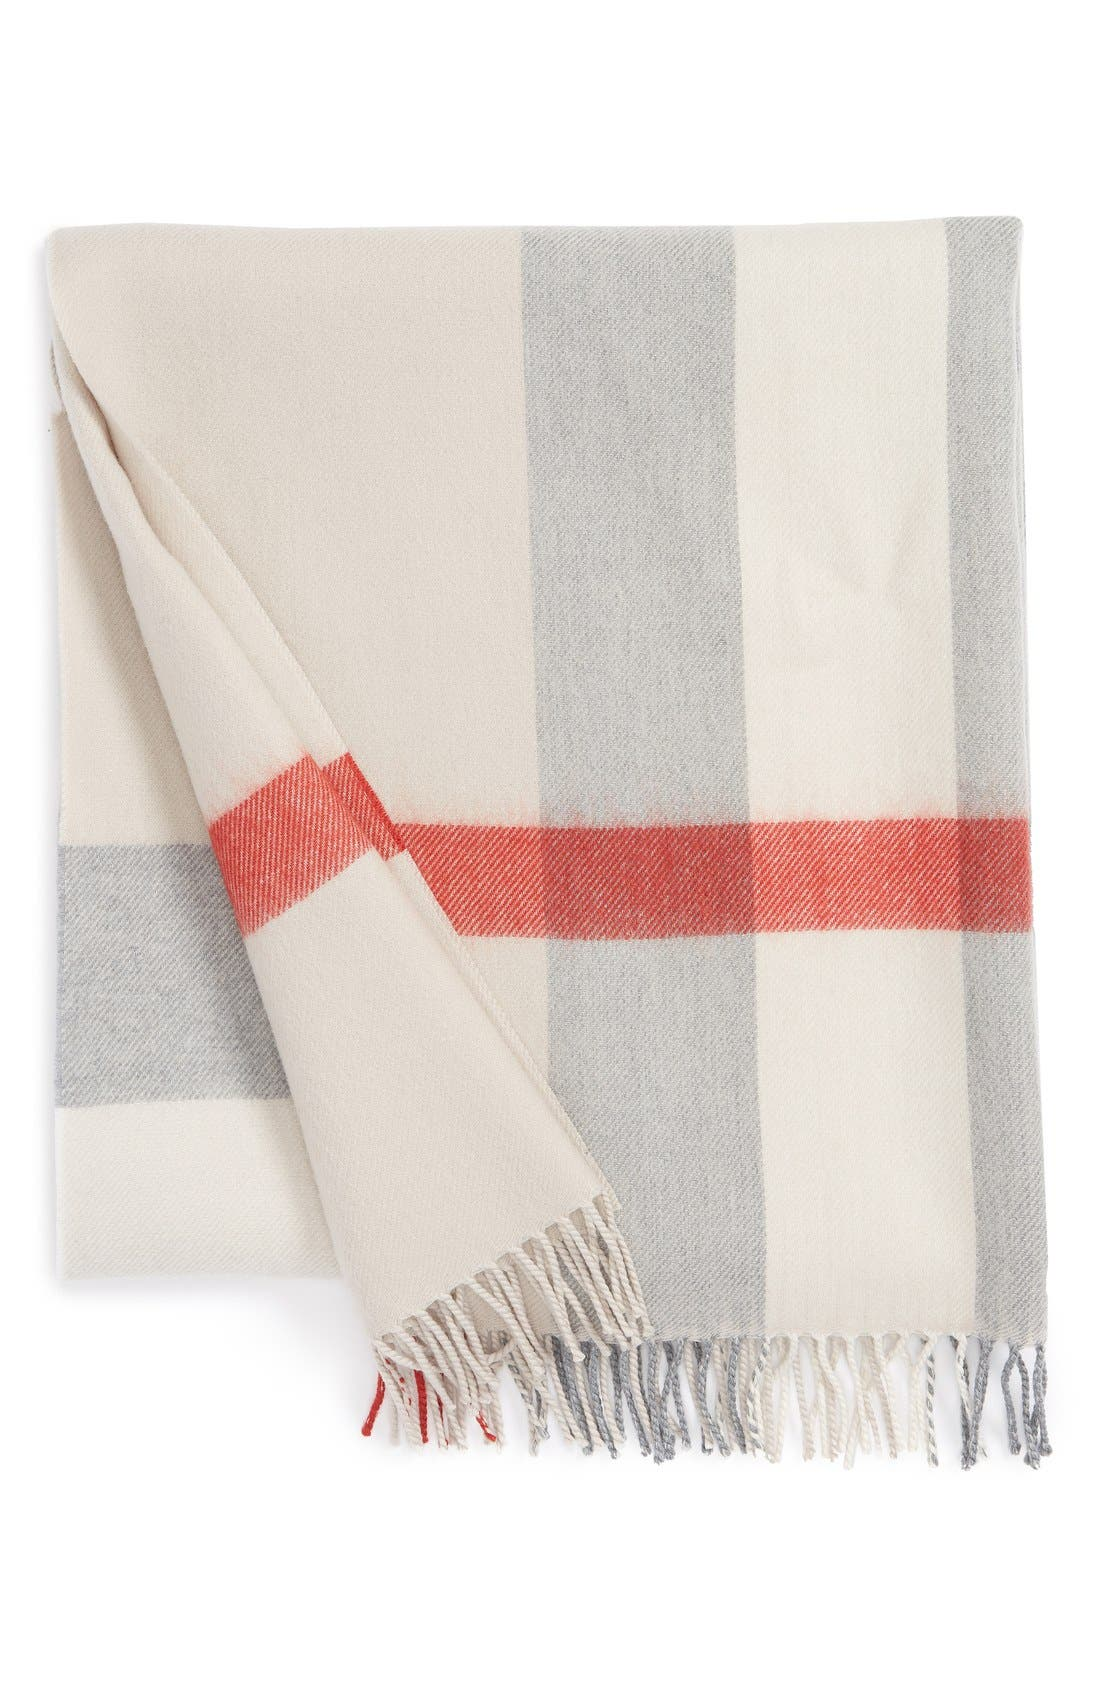 Burberry Merino Wool Baby Blanket